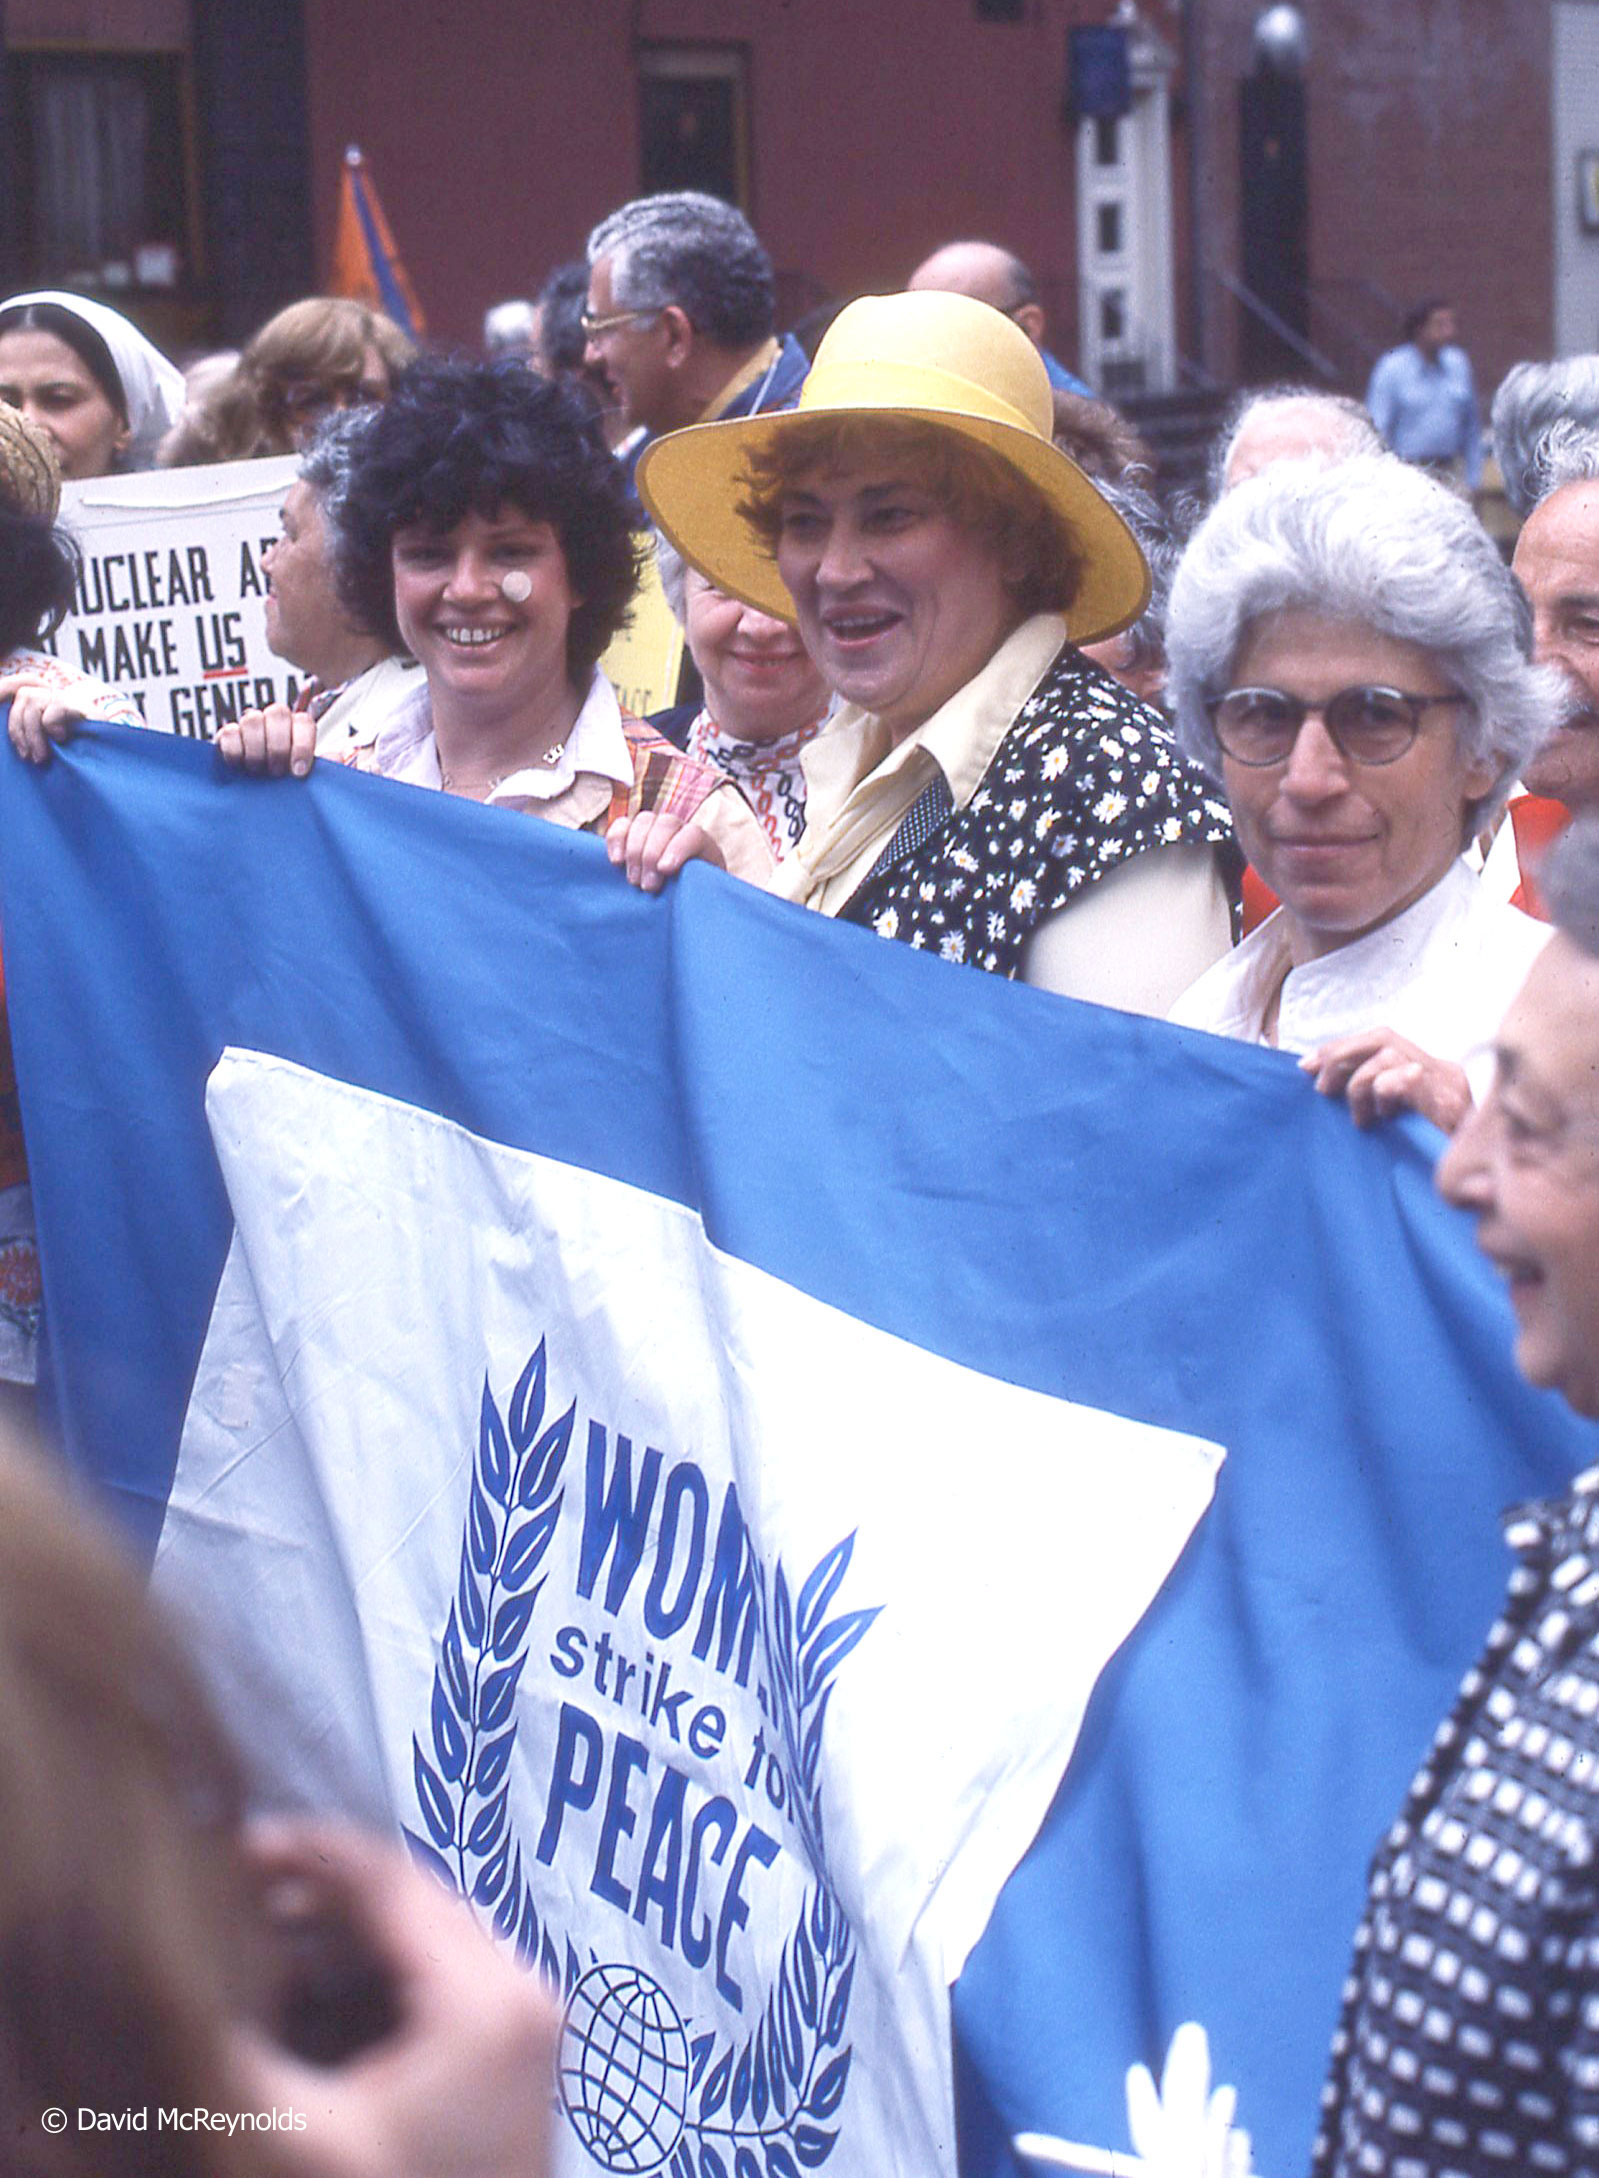 Bella Abzug in hat marching during the Special Session on Disarmament Demonstration, May 27, 1978.